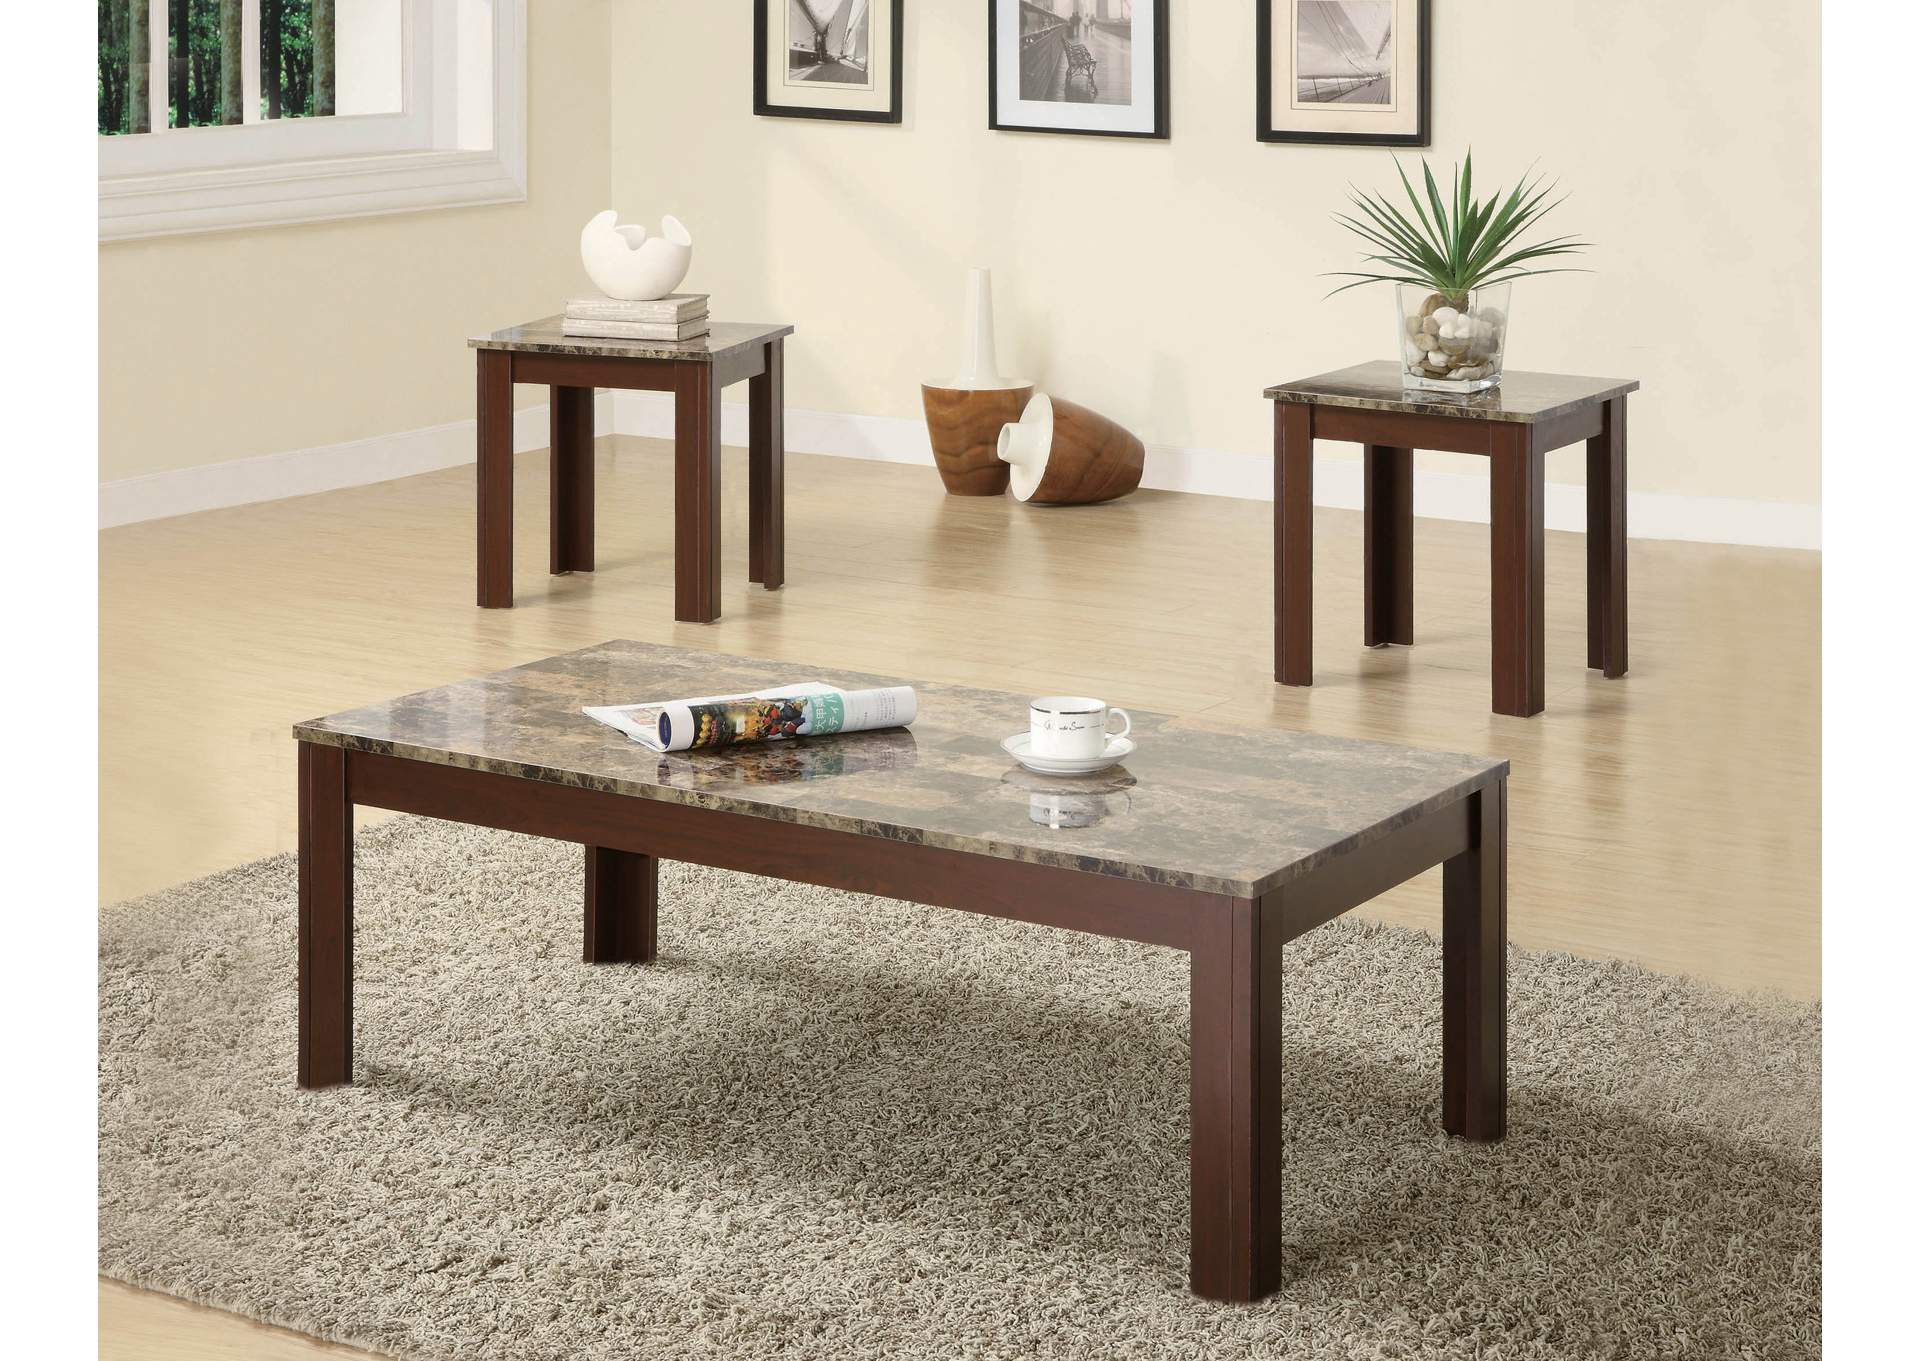 Marble Looking 3pc Occasional Table Set,ABF Coaster Furniture